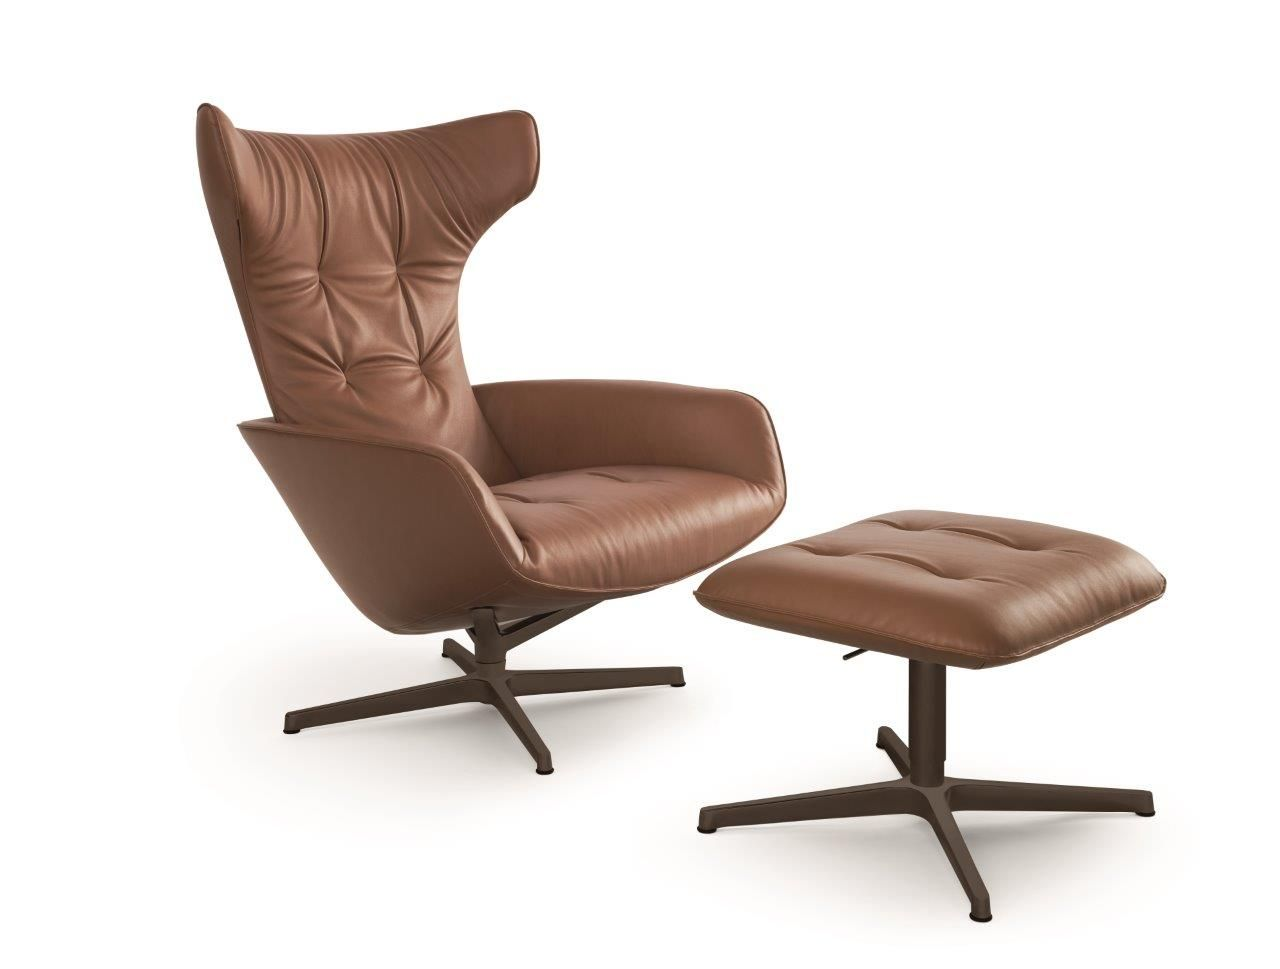 Onsa Chair Walter Knoll Knoll Chairs Chair Living Room Chairs